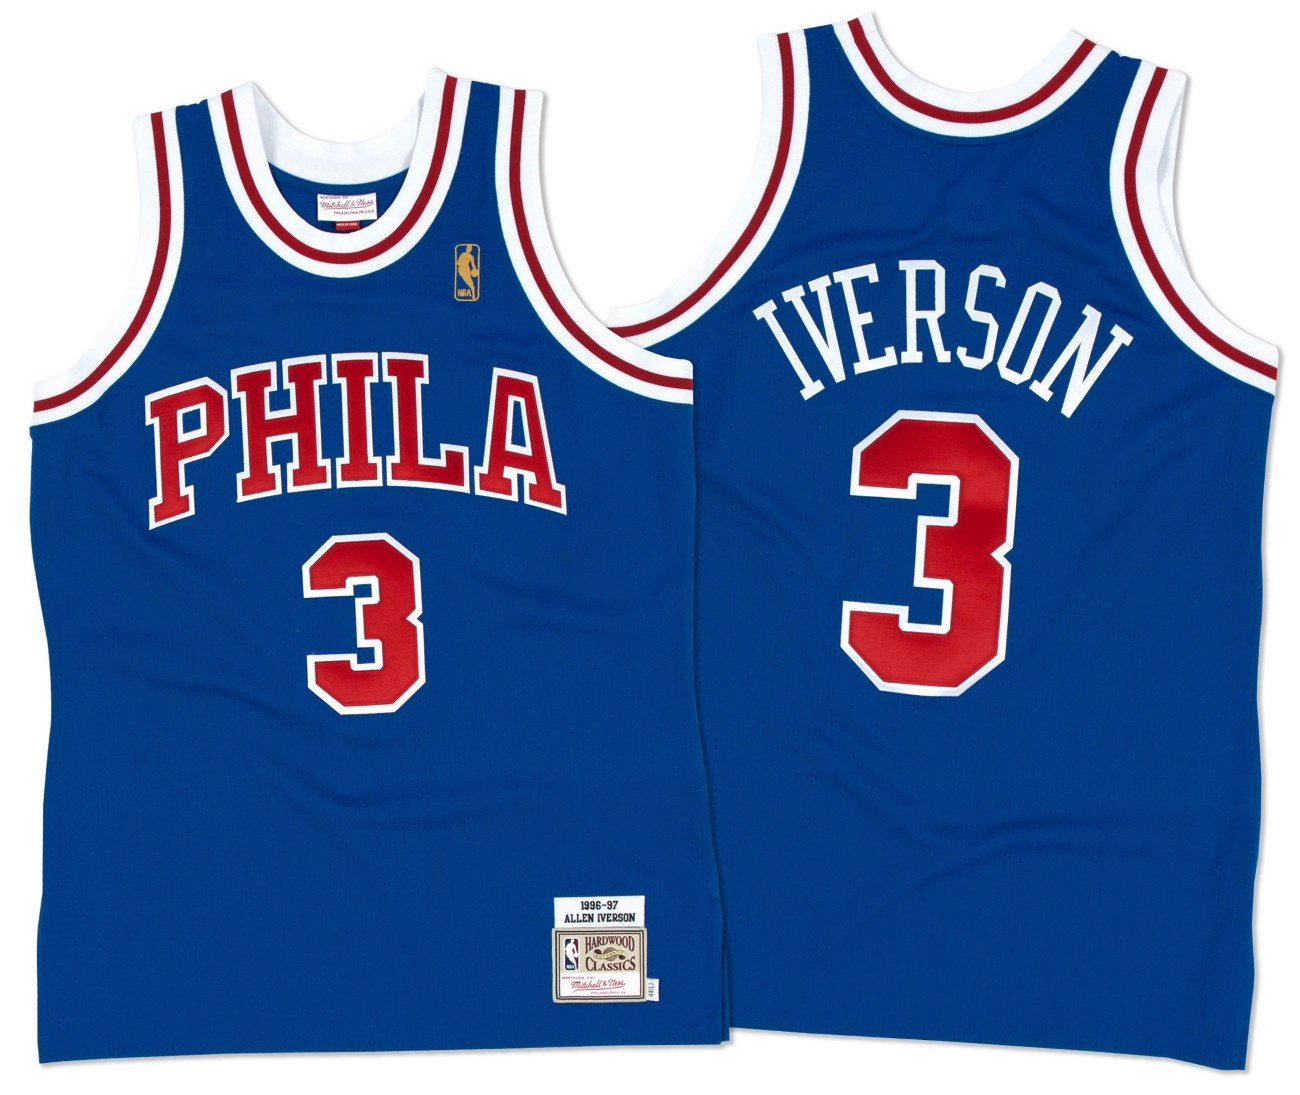 Allen Iverson Philadelphia 76ers Mitchell & Ness Authentic 1996 Blue NBA Jersey